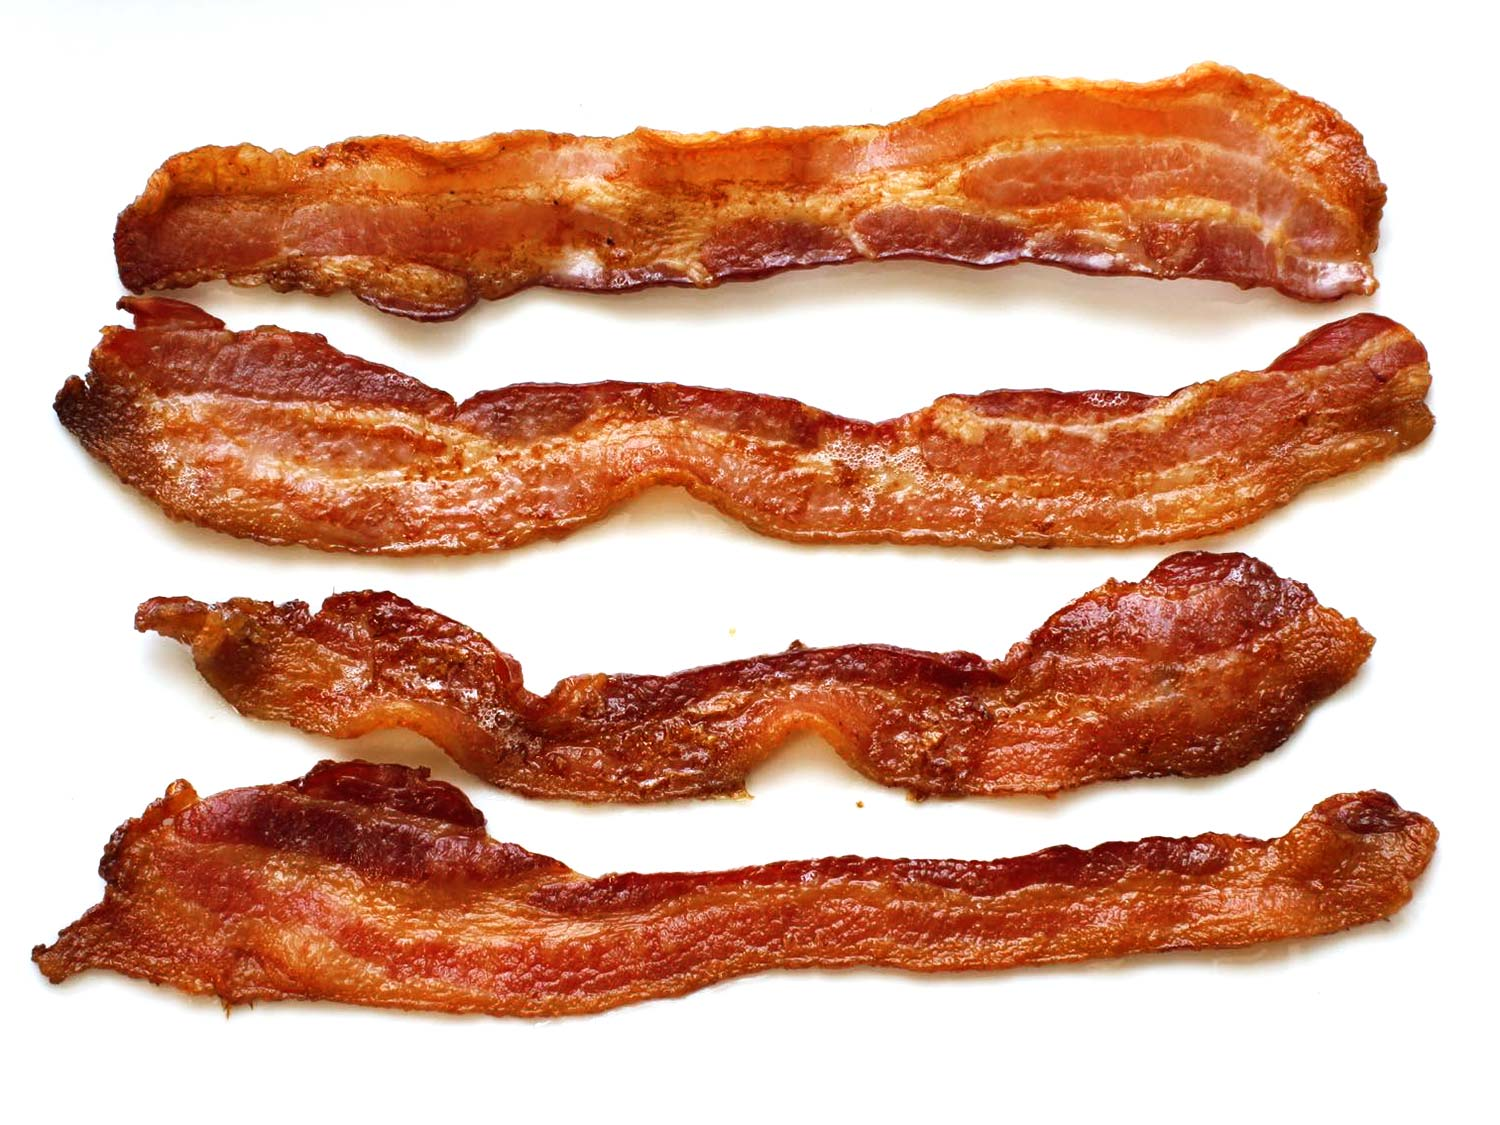 Images of Bacon | 1500x1125